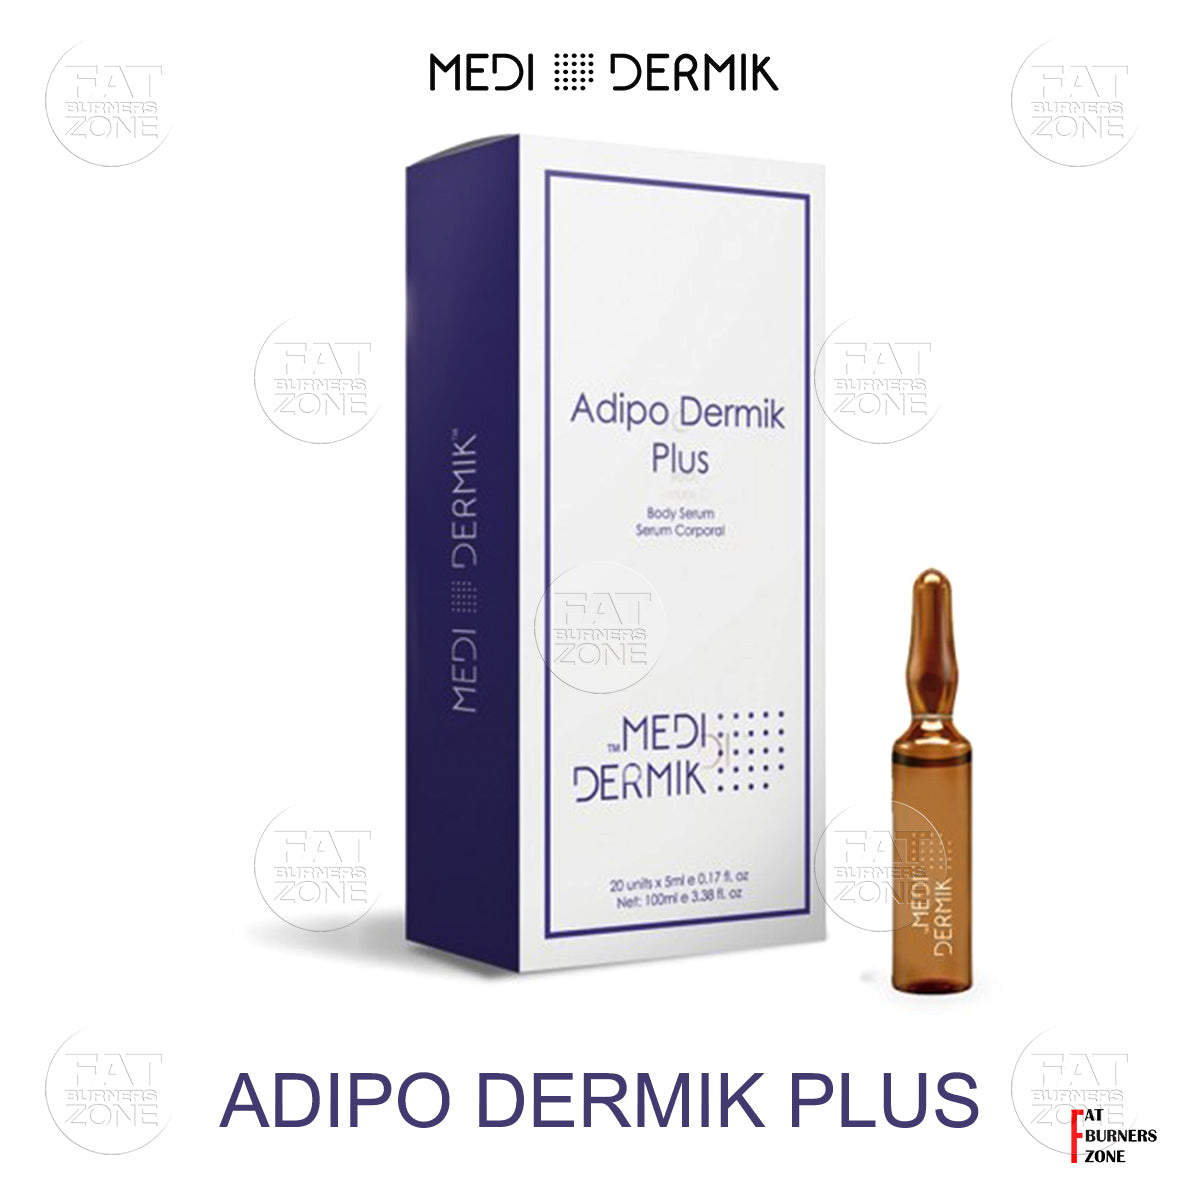 Adipo Dermik Plus 50ml Phospatidylcholine - L-Carnitine By Medidermik